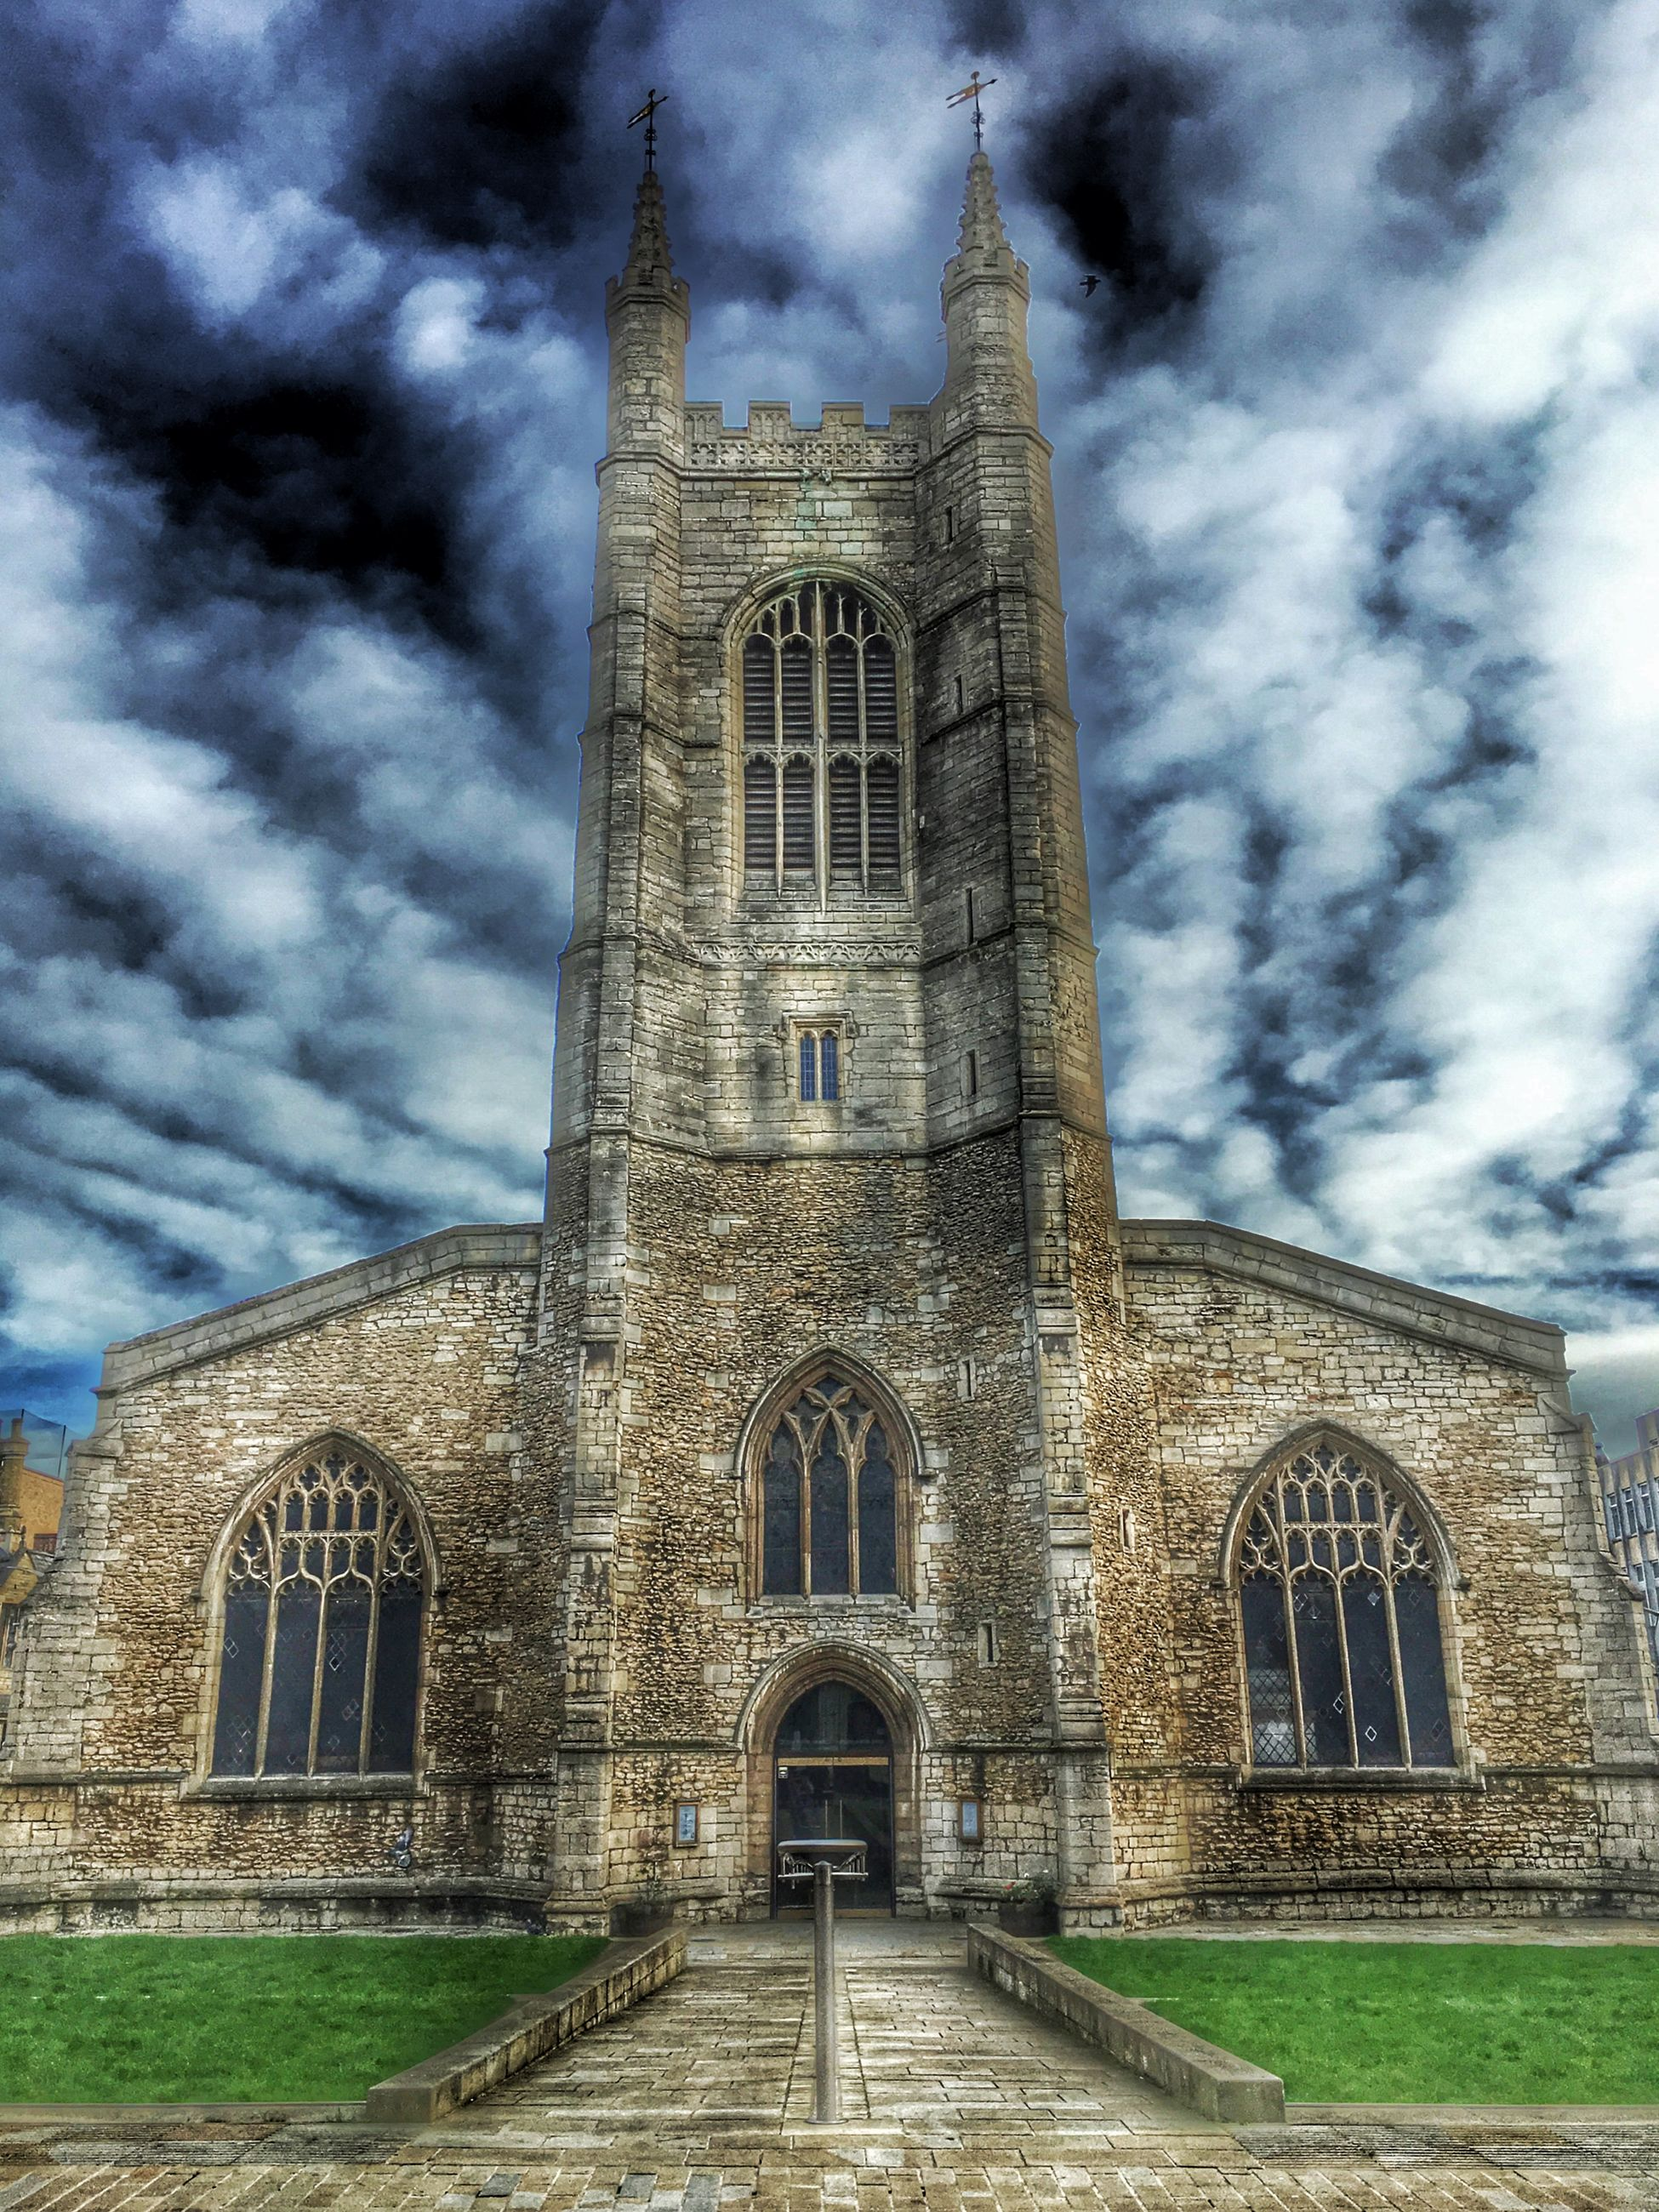 architecture, built structure, building exterior, sky, cloud - sky, religion, church, history, cloudy, low angle view, place of worship, old, spirituality, cloud, arch, cathedral, travel destinations, the past